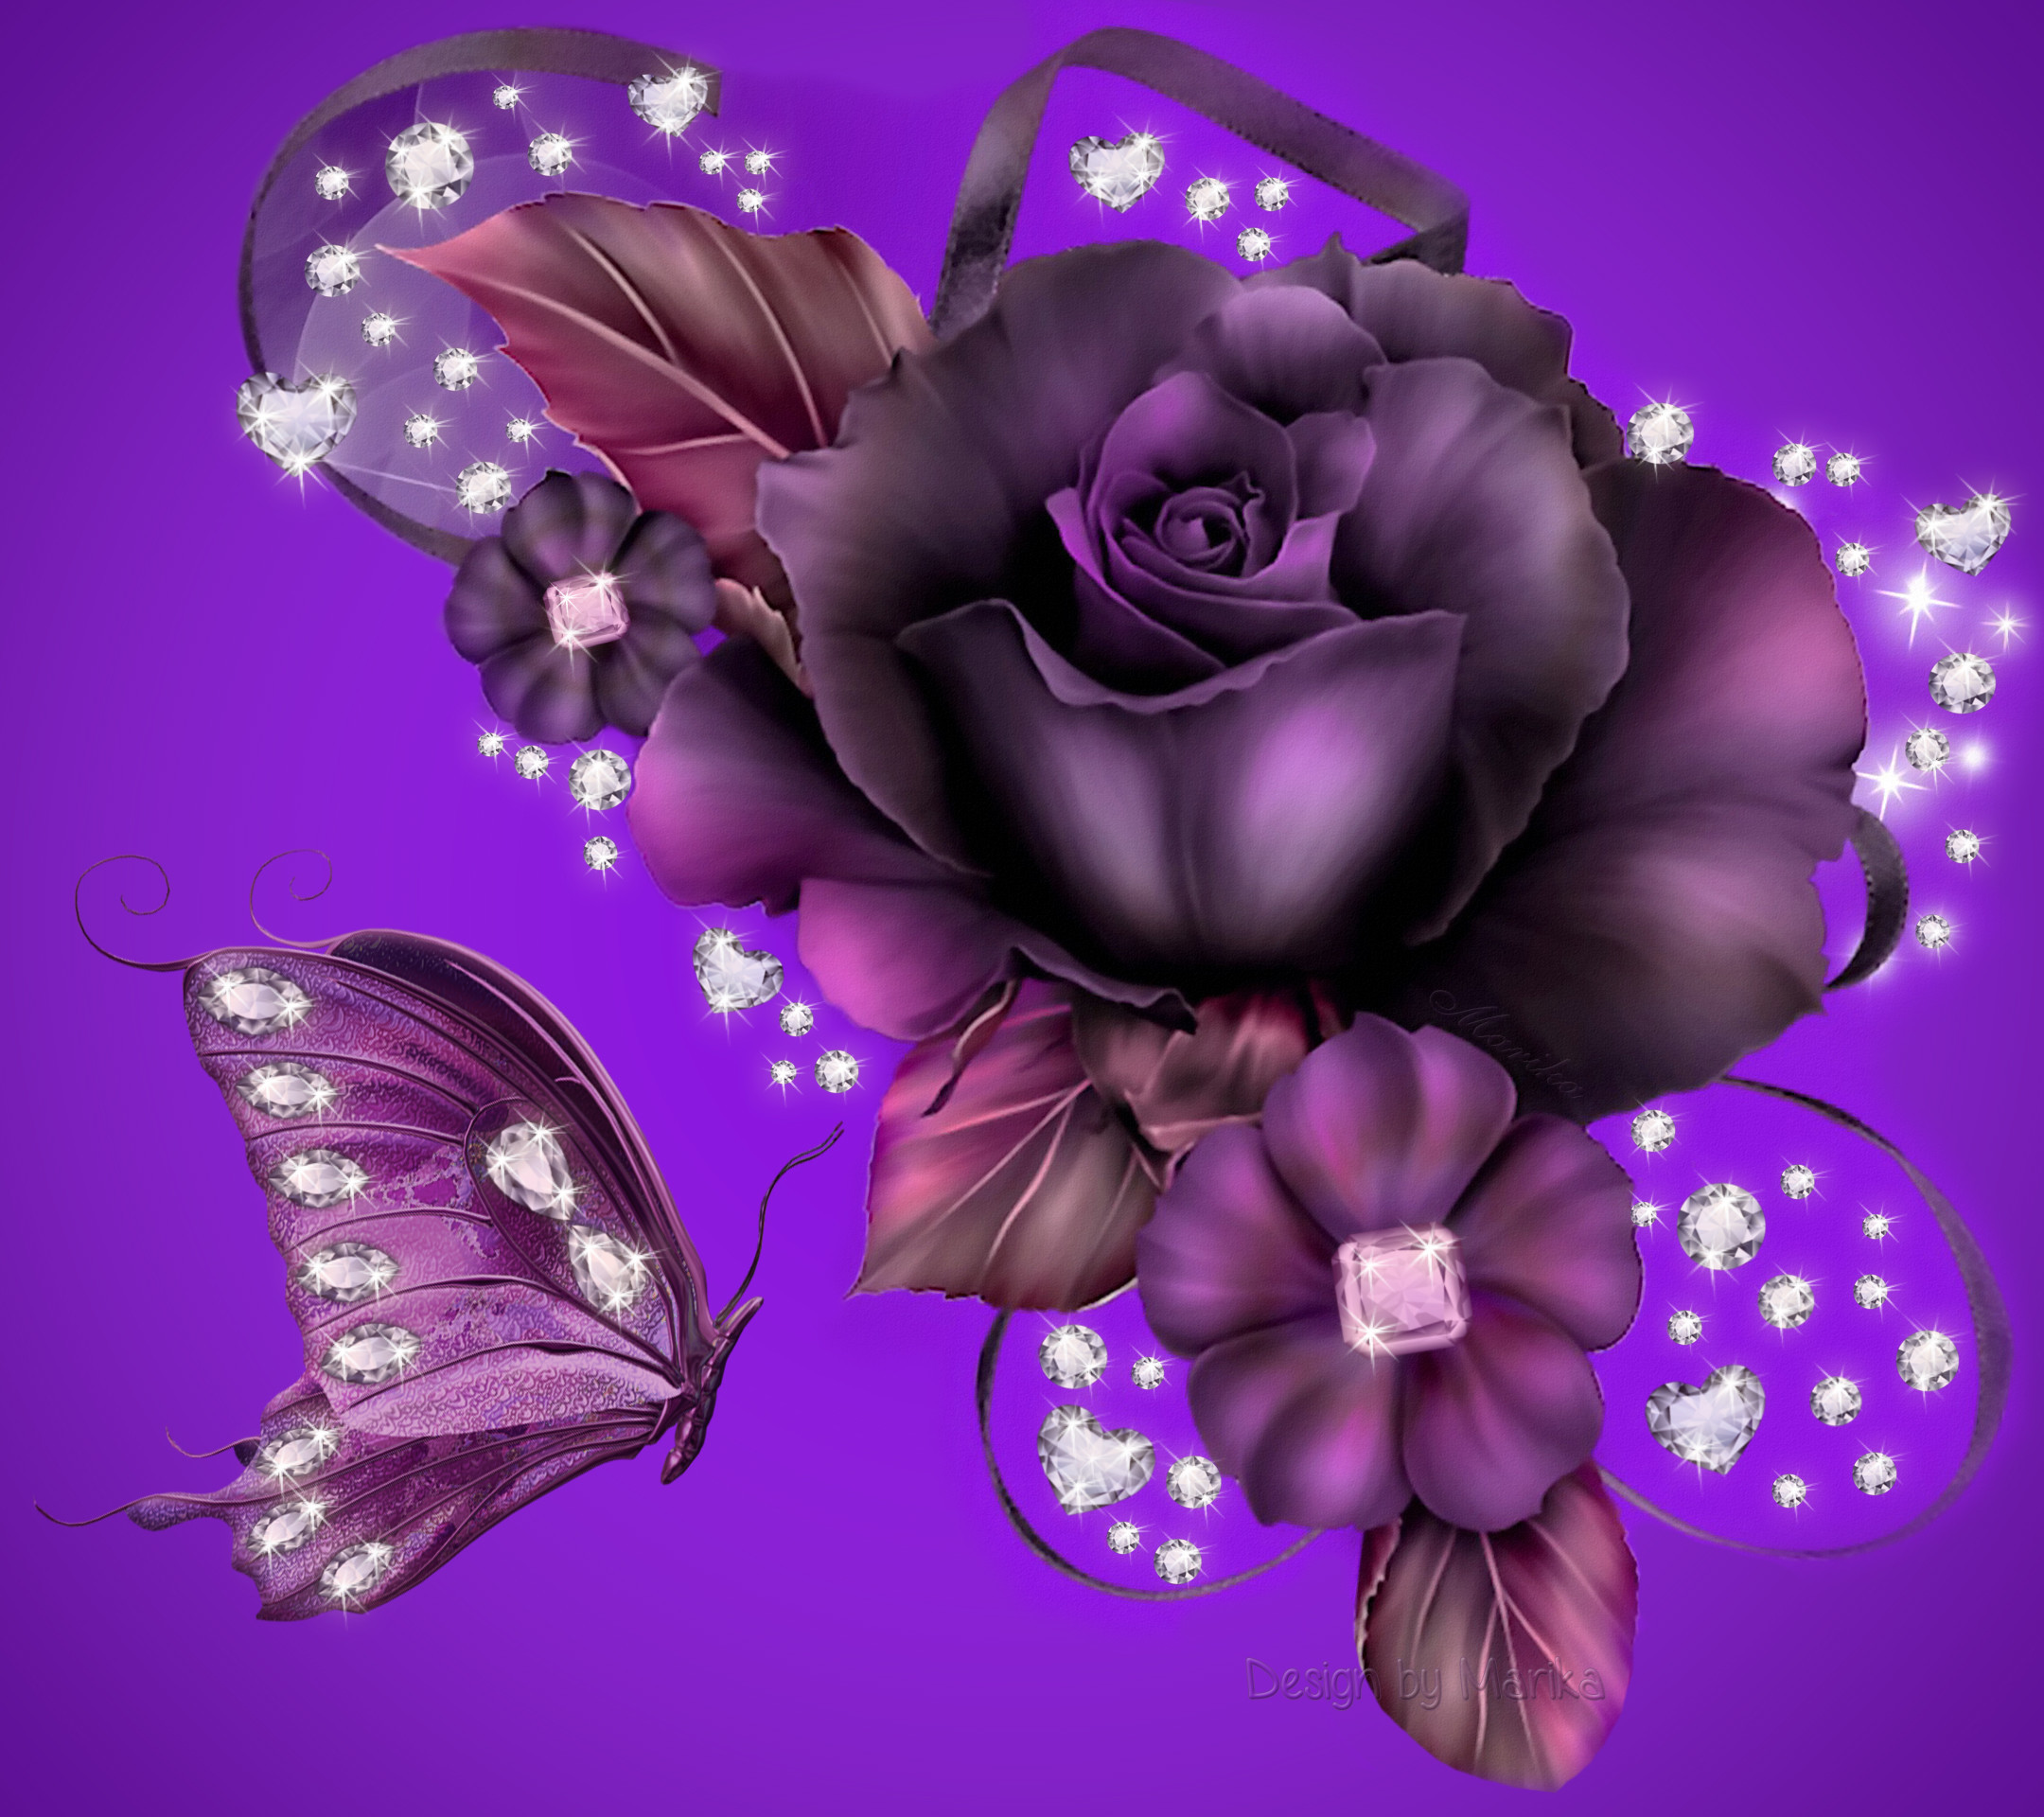 purple rose backgrounds 51 images